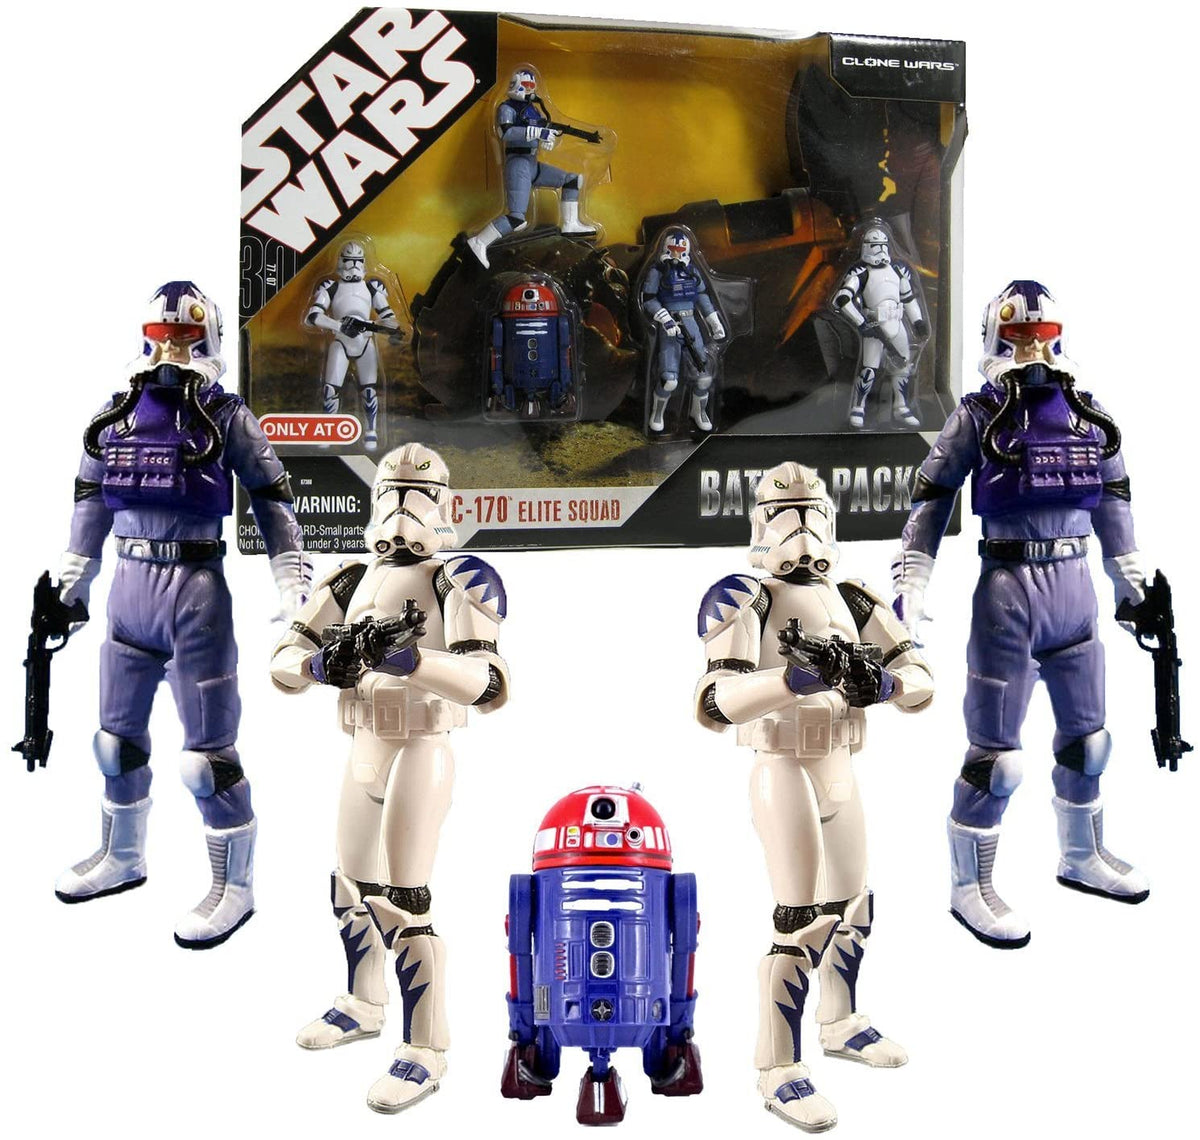 Star Wars 30th Anniversary Battle Pack ELITE SQUAD with 5 Action Figures